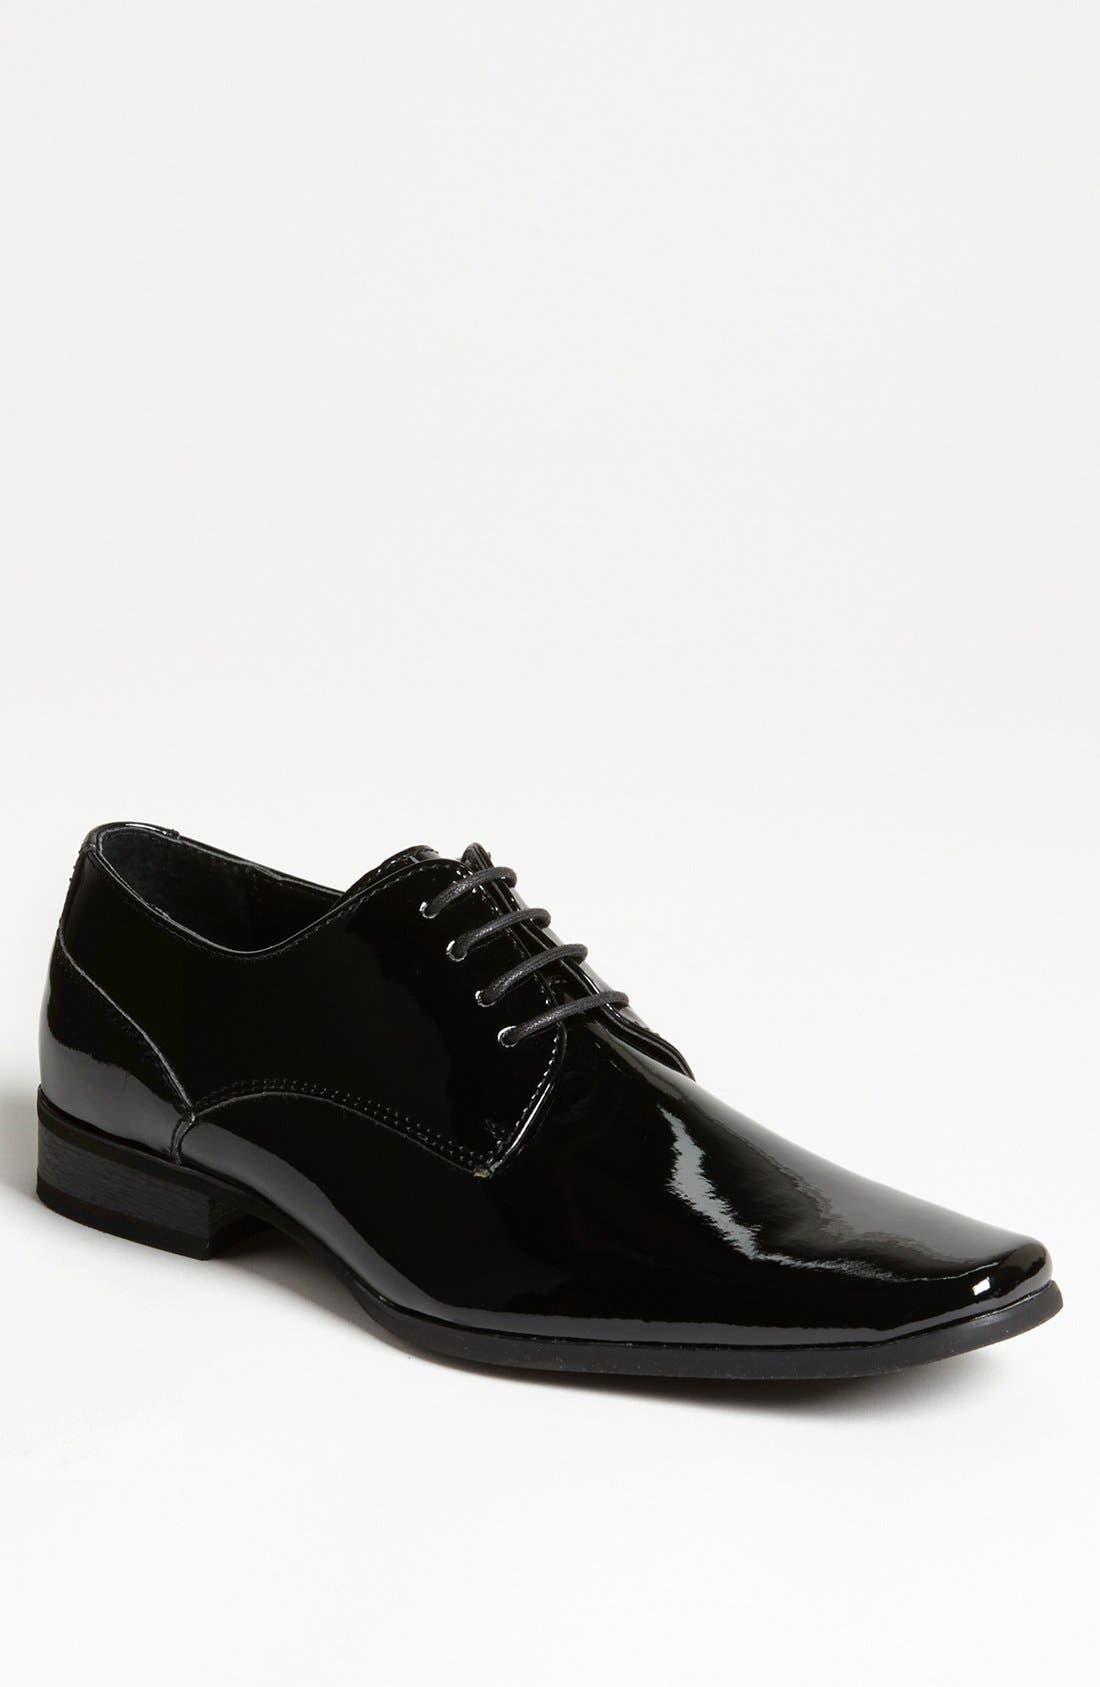 CALVIN KLEIN, 'Brodie' Plain Toe Derby, Main thumbnail 1, color, BLACK PATENT